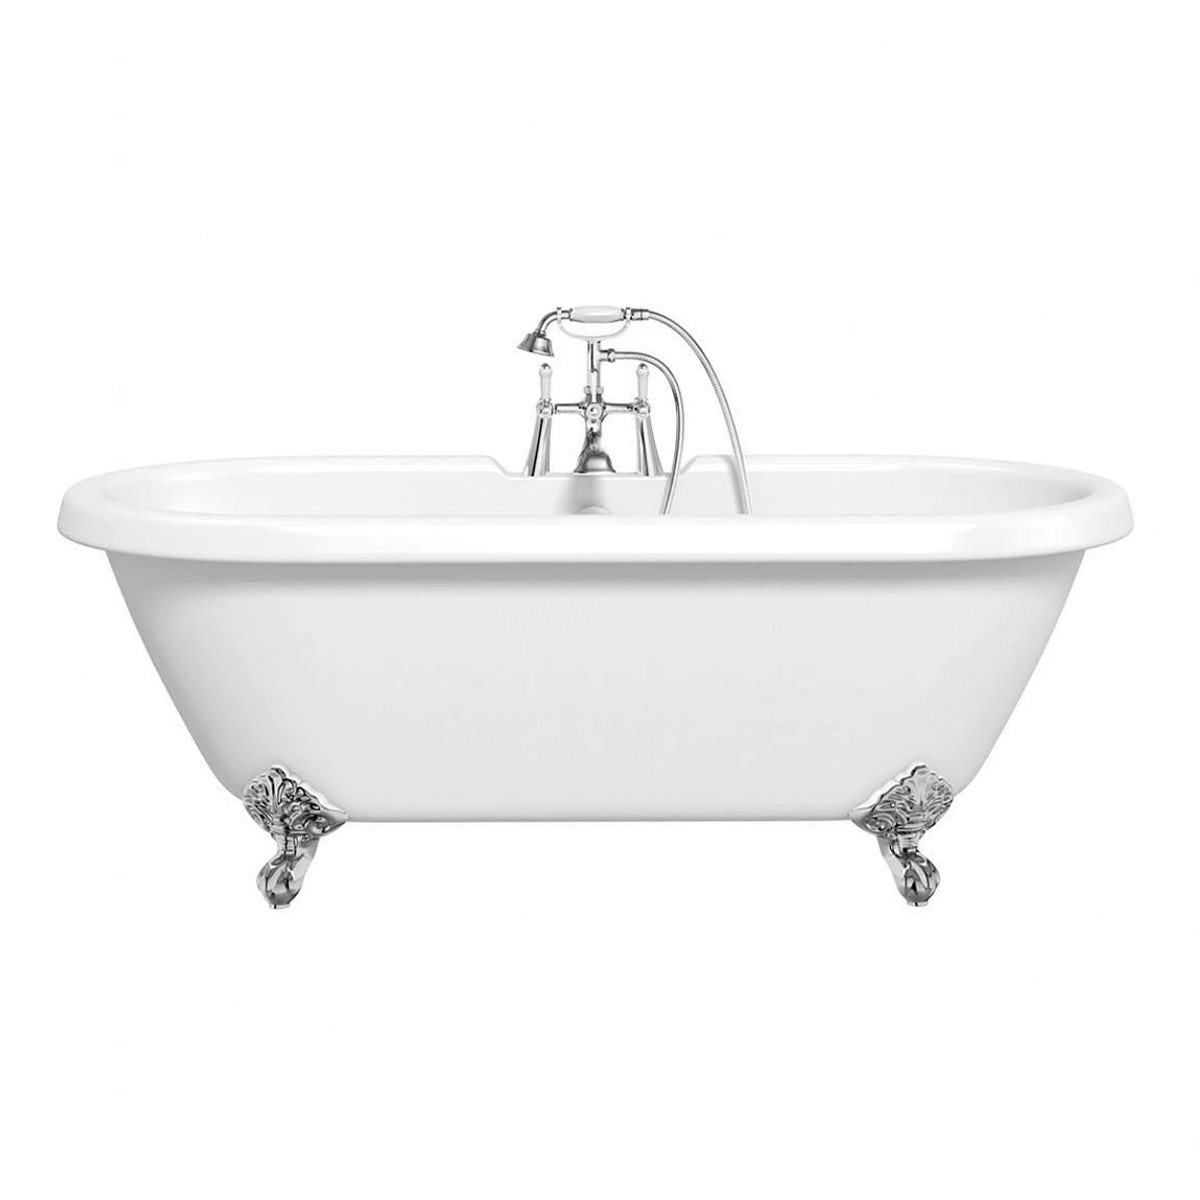 The Bath Co. Dulwich roll top bath with ball feet white 1700mm